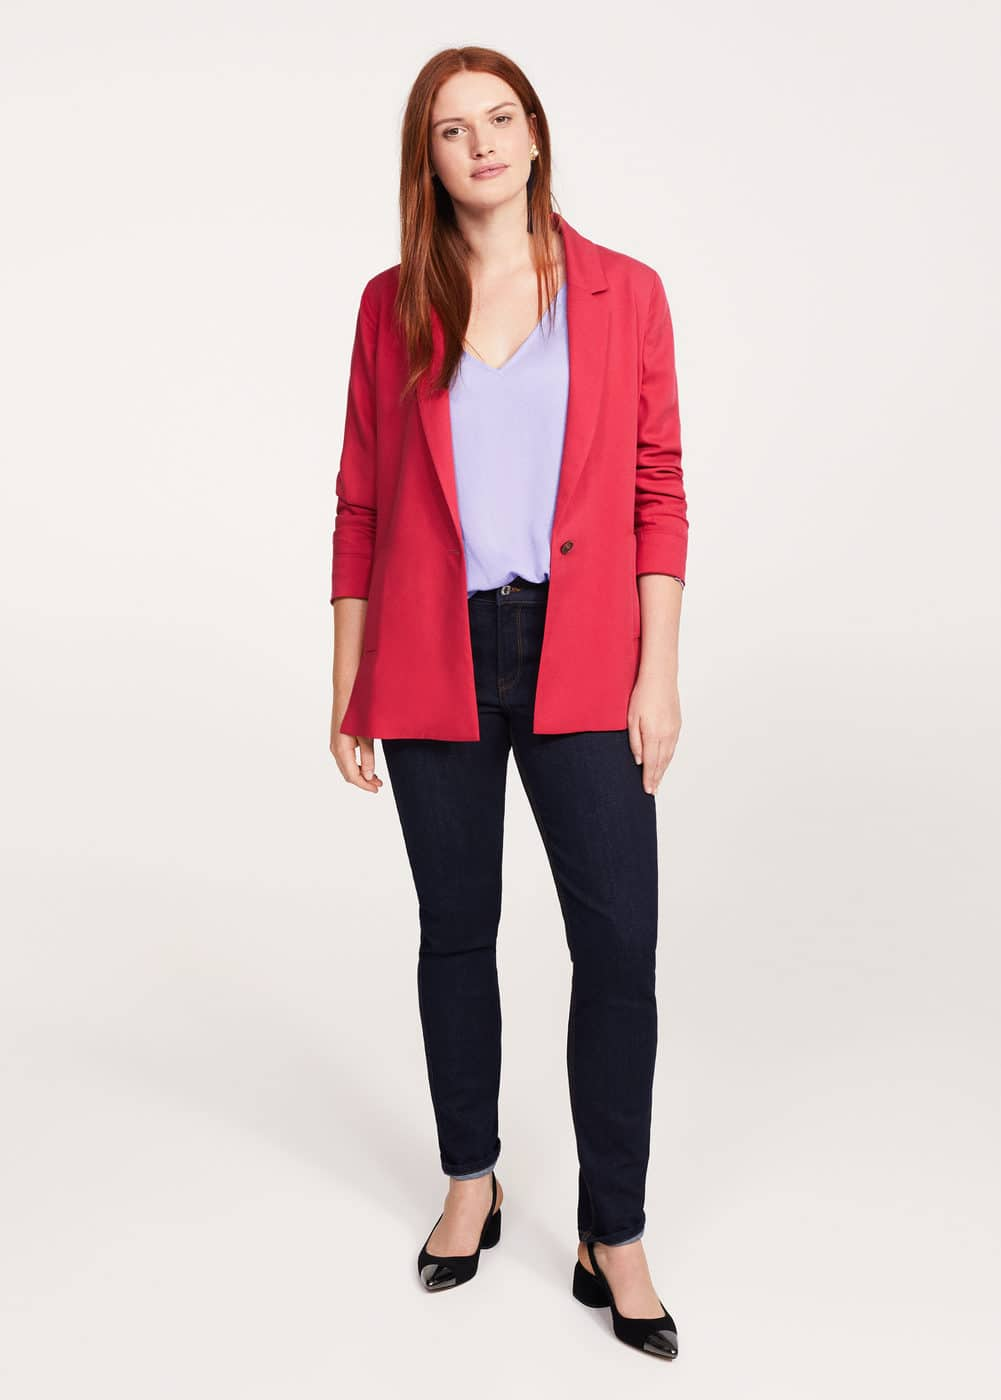 Ruched satin blouse | VIOLETA BY MANGO